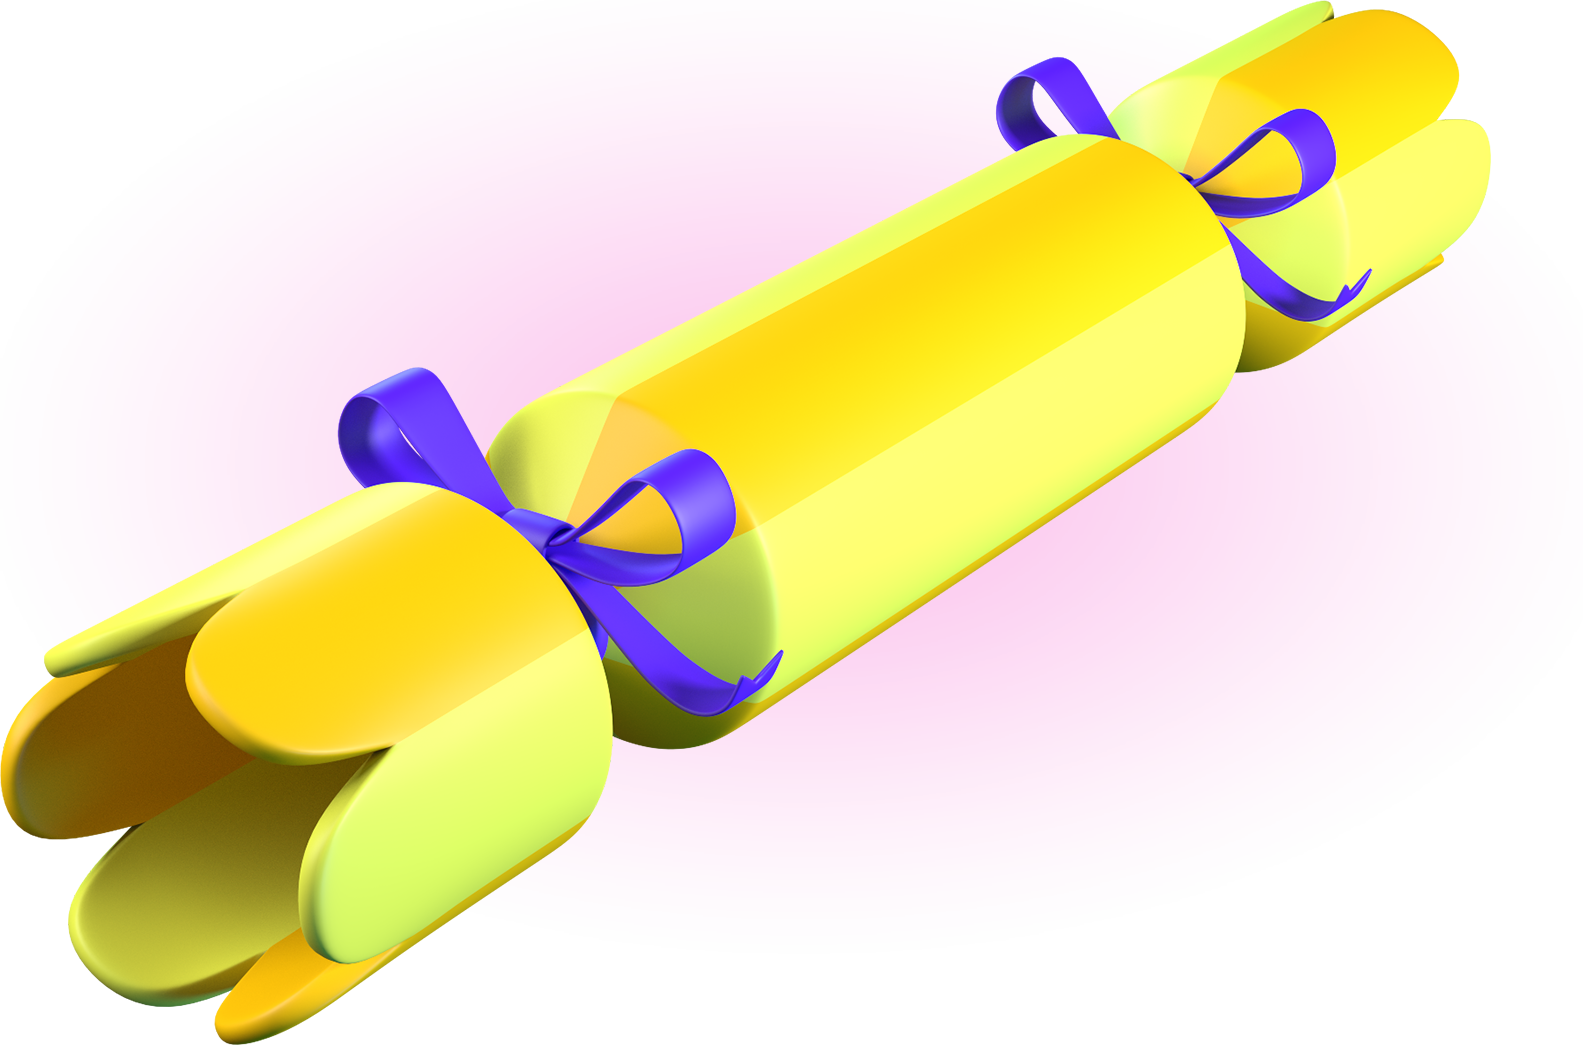 3D rendering of cracker model used in Battle Crackers